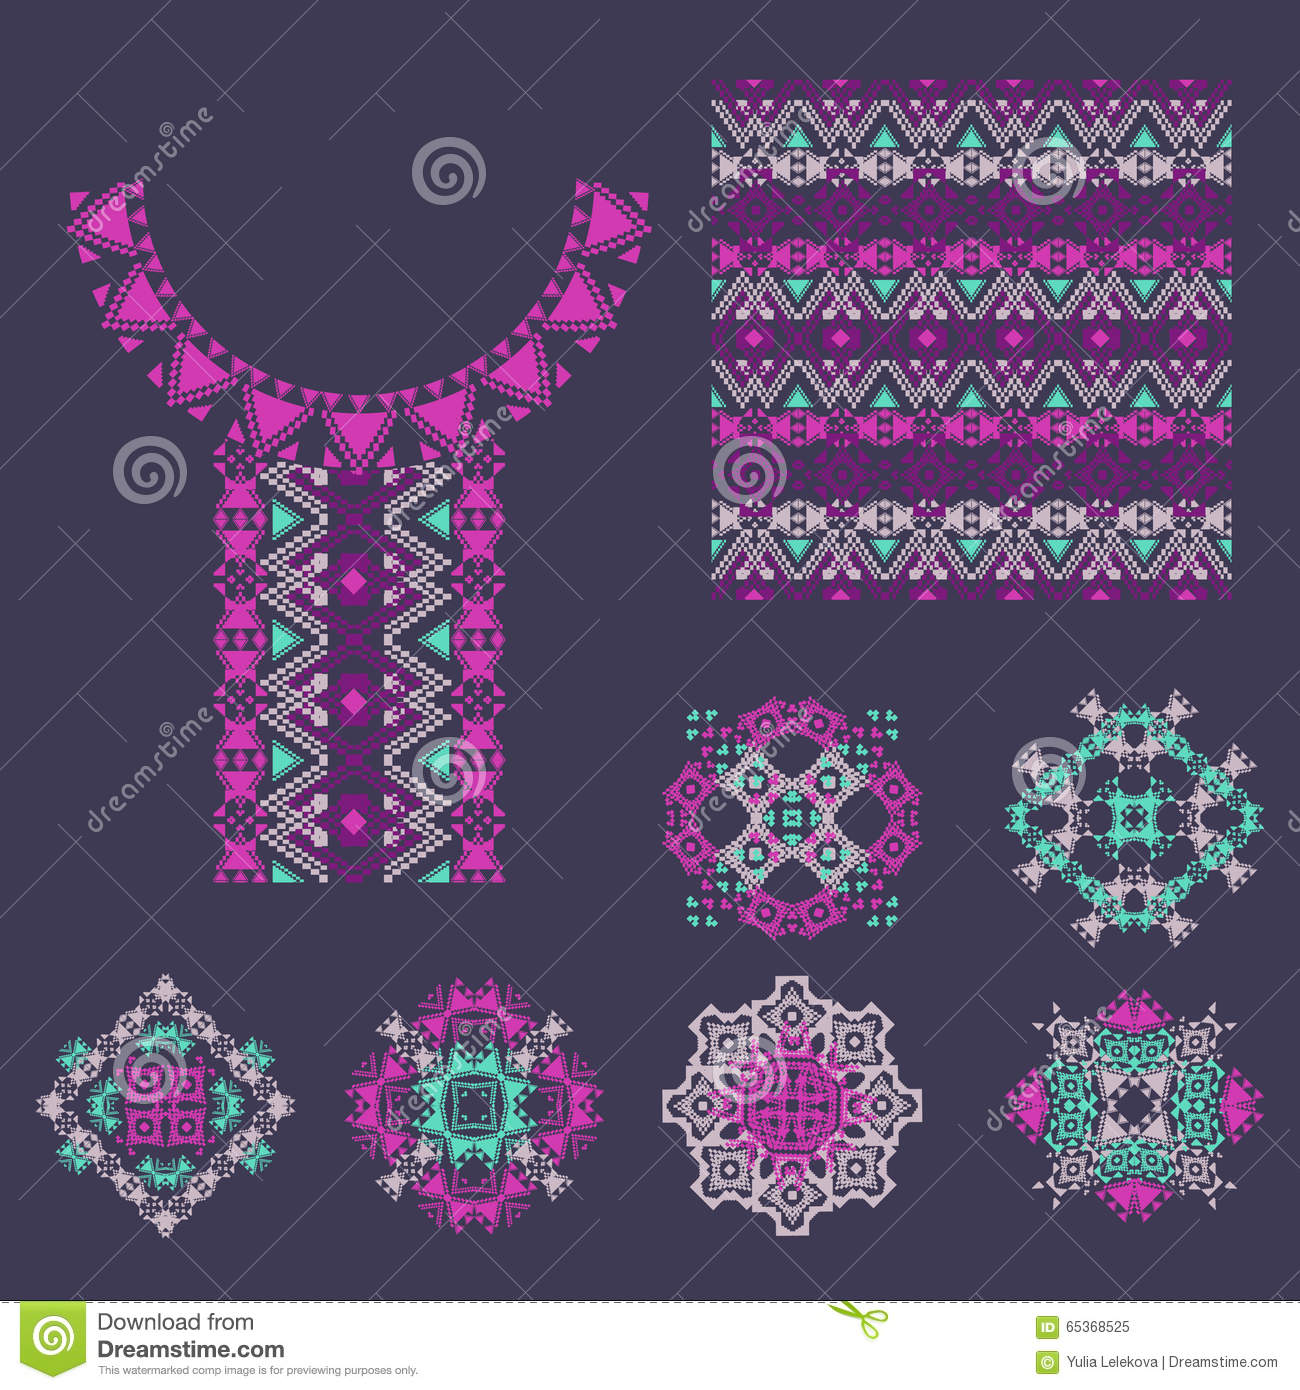 Elements Of Fashion Design : Vector set with decorative ethnic elements